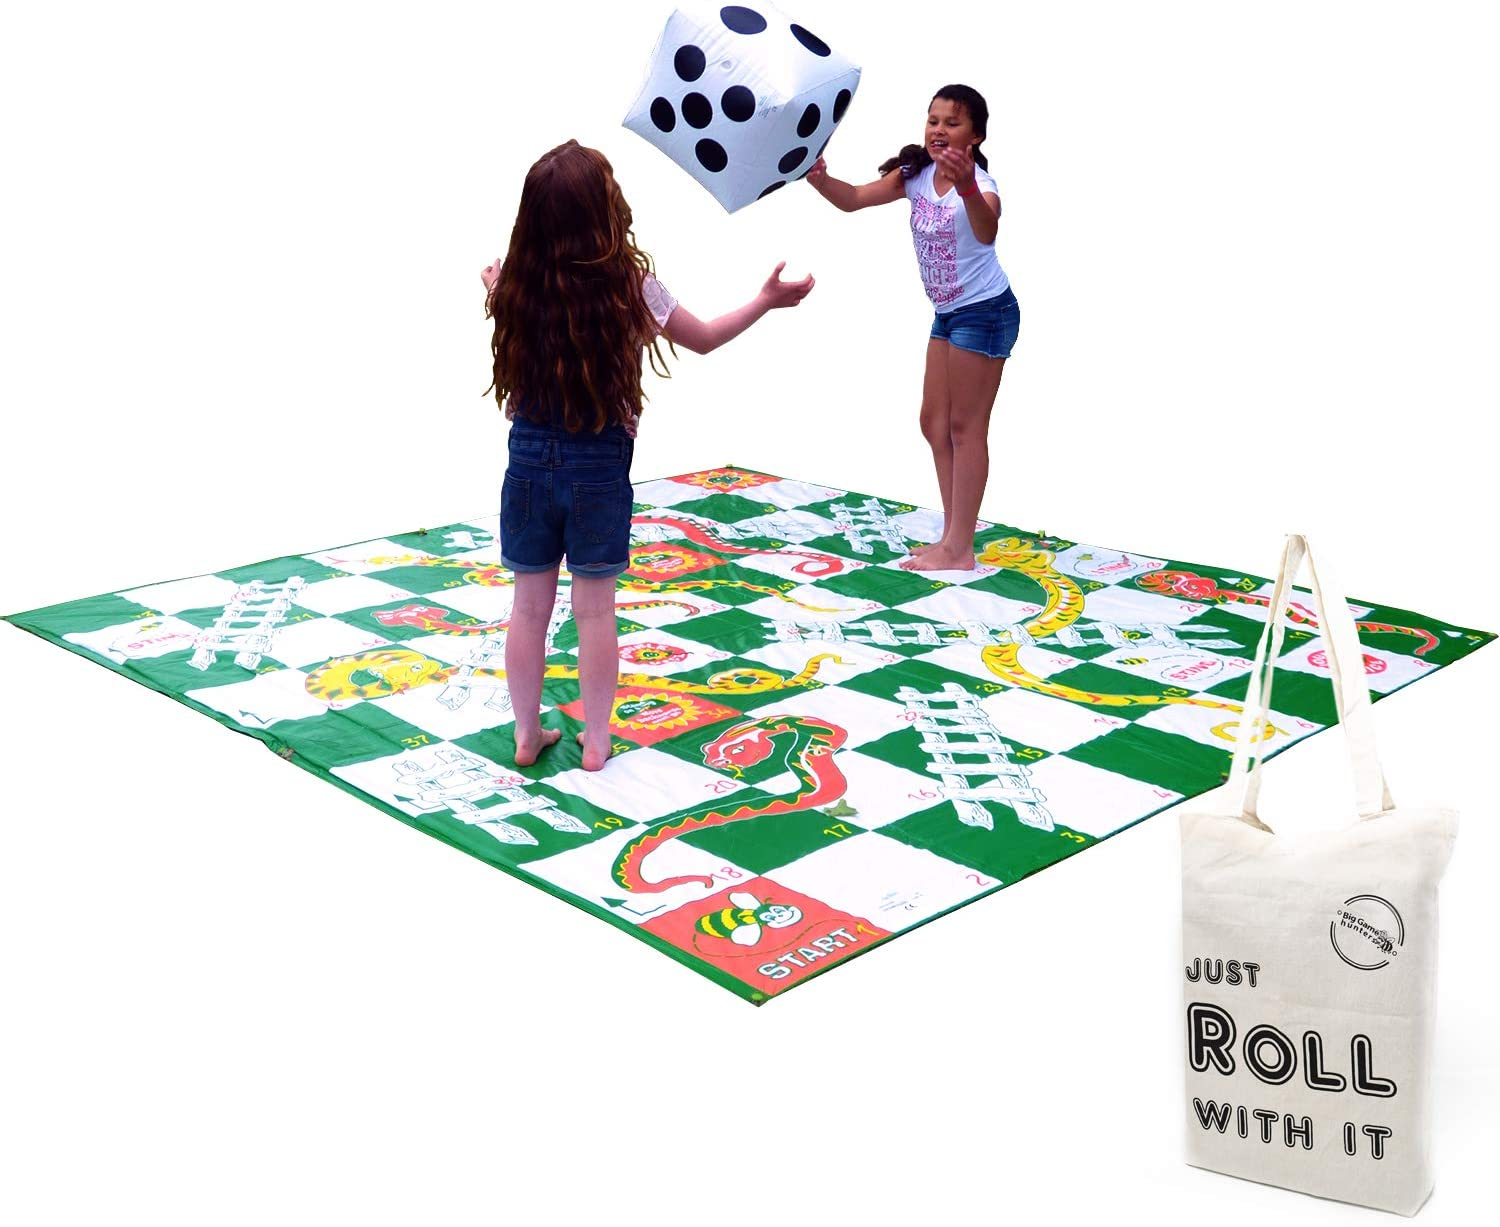 B00007FP6G FlagHouse - Giant Snakes And Ladders - Large Inflatable Die - Large playing mat - Jumbo Board Game 710BT8ahNaL.SL1500_